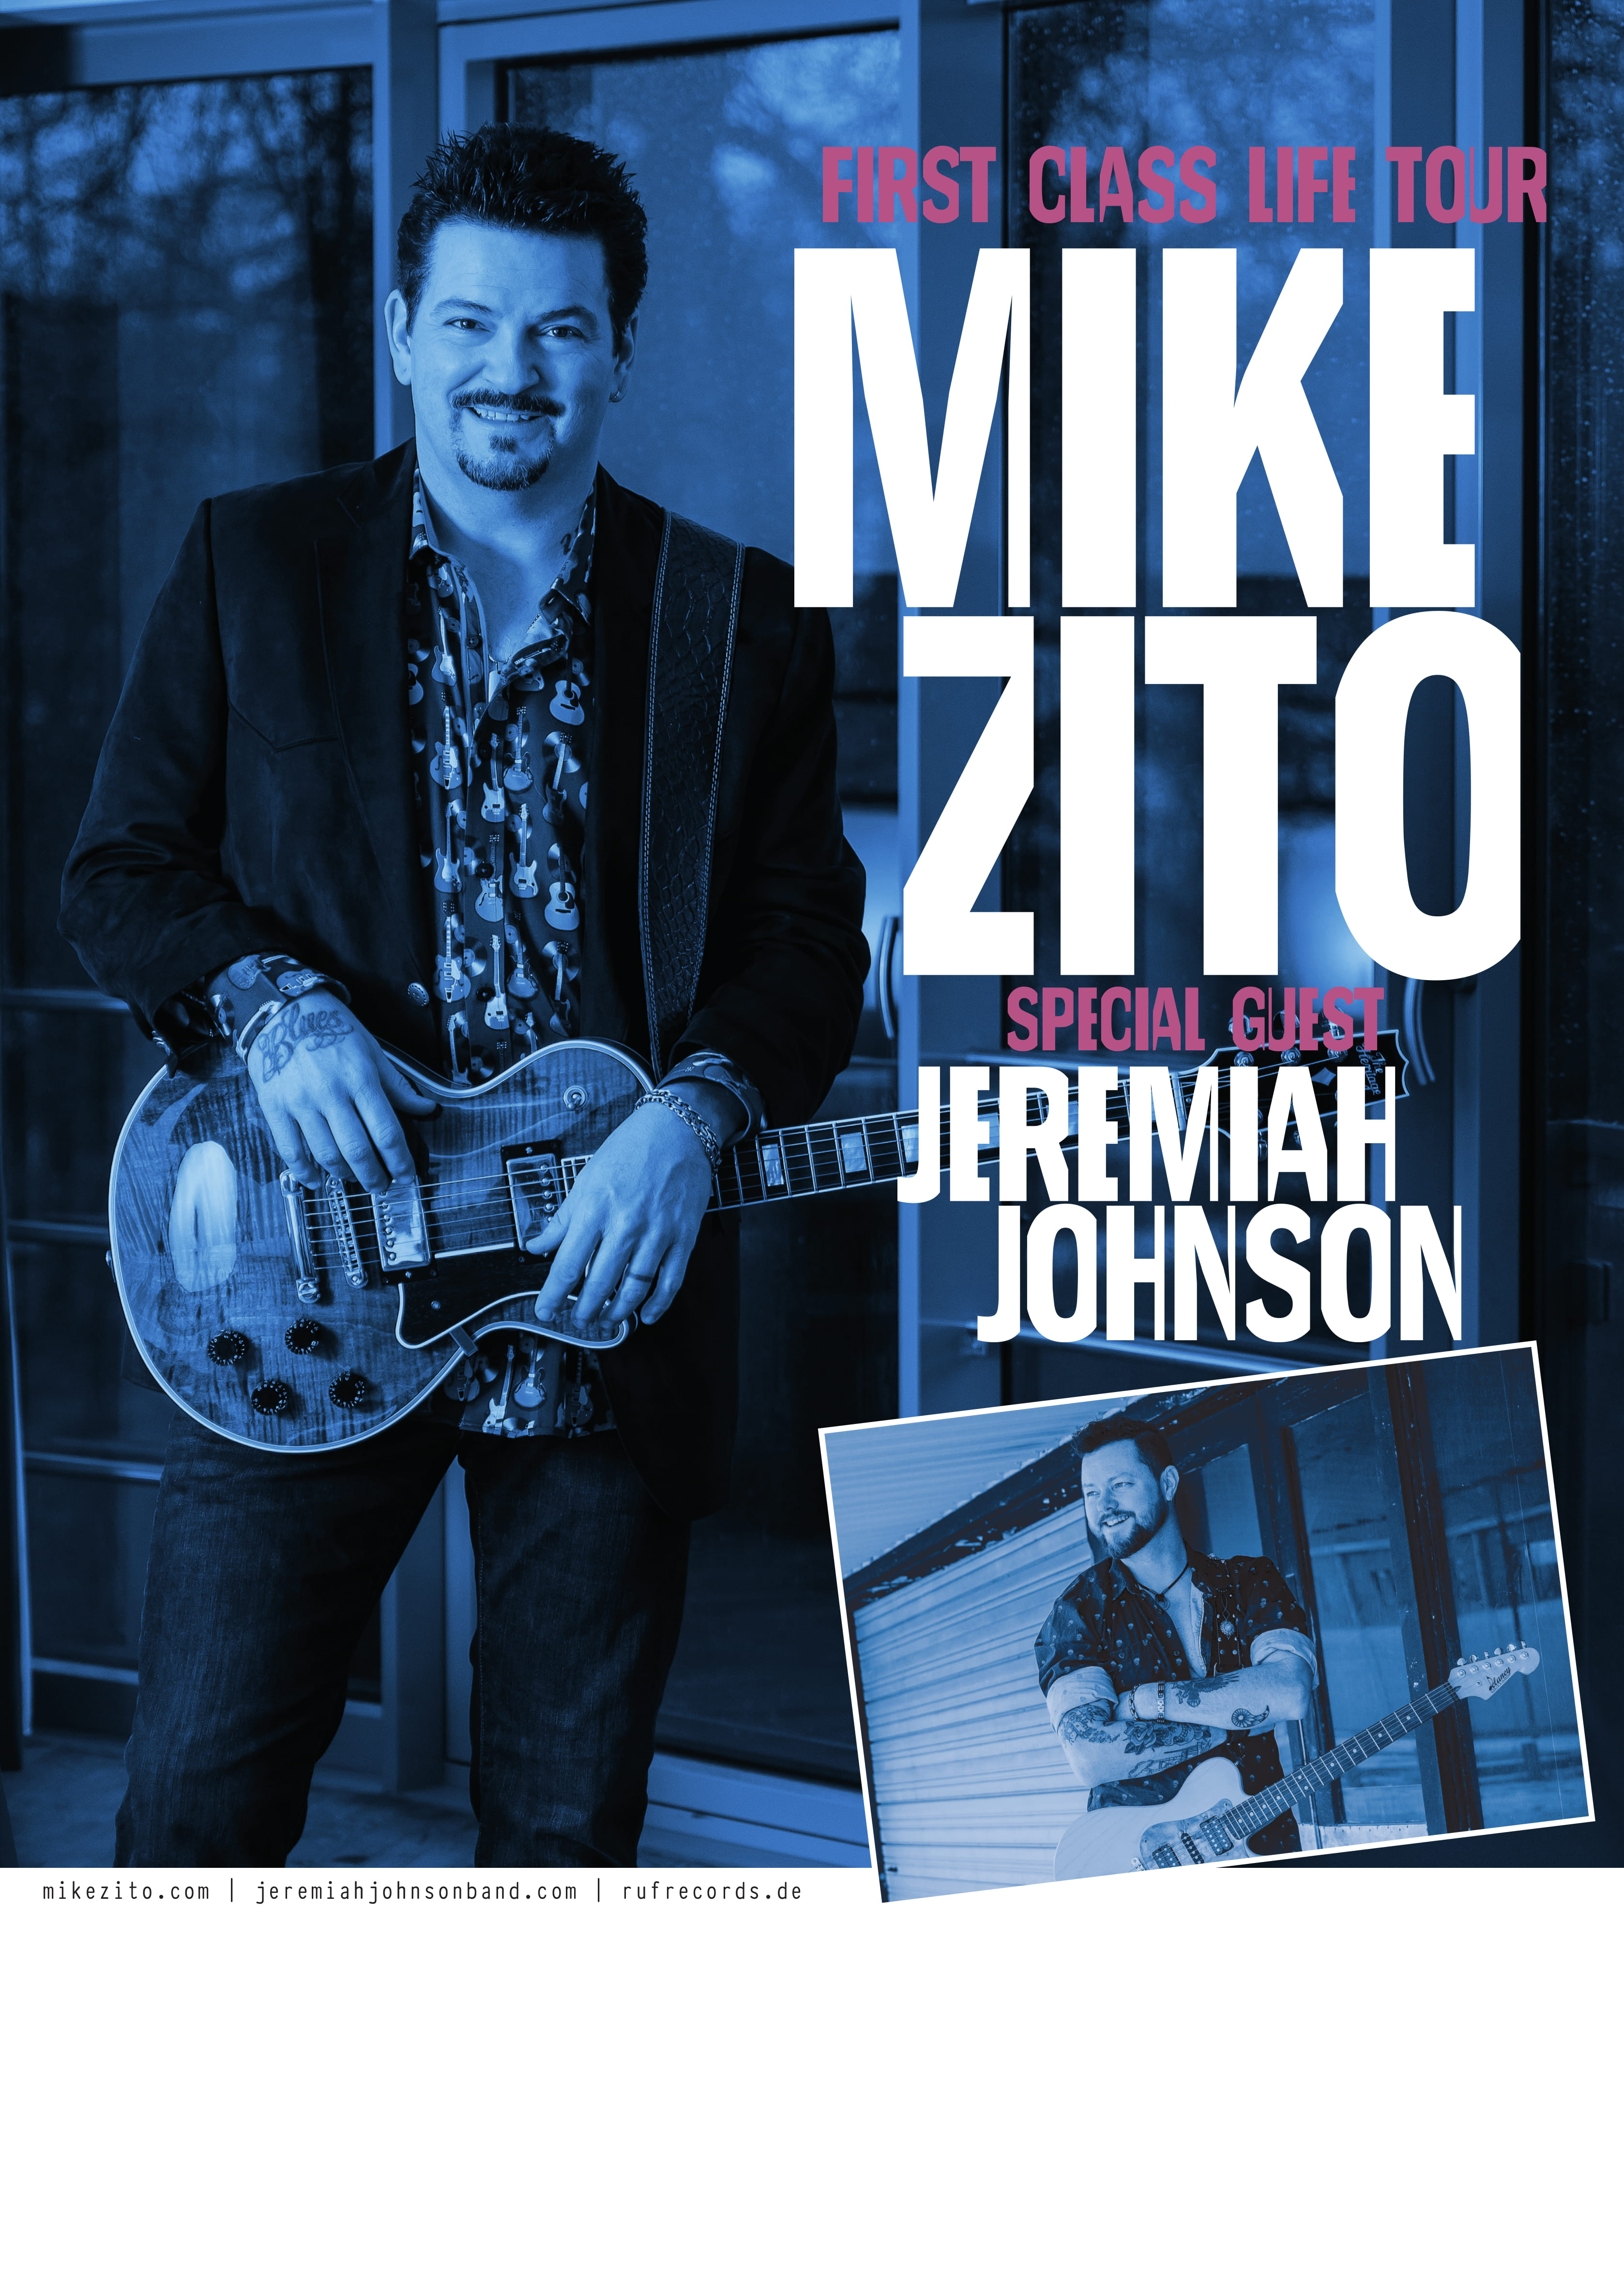 Mike zito A2 2019-1